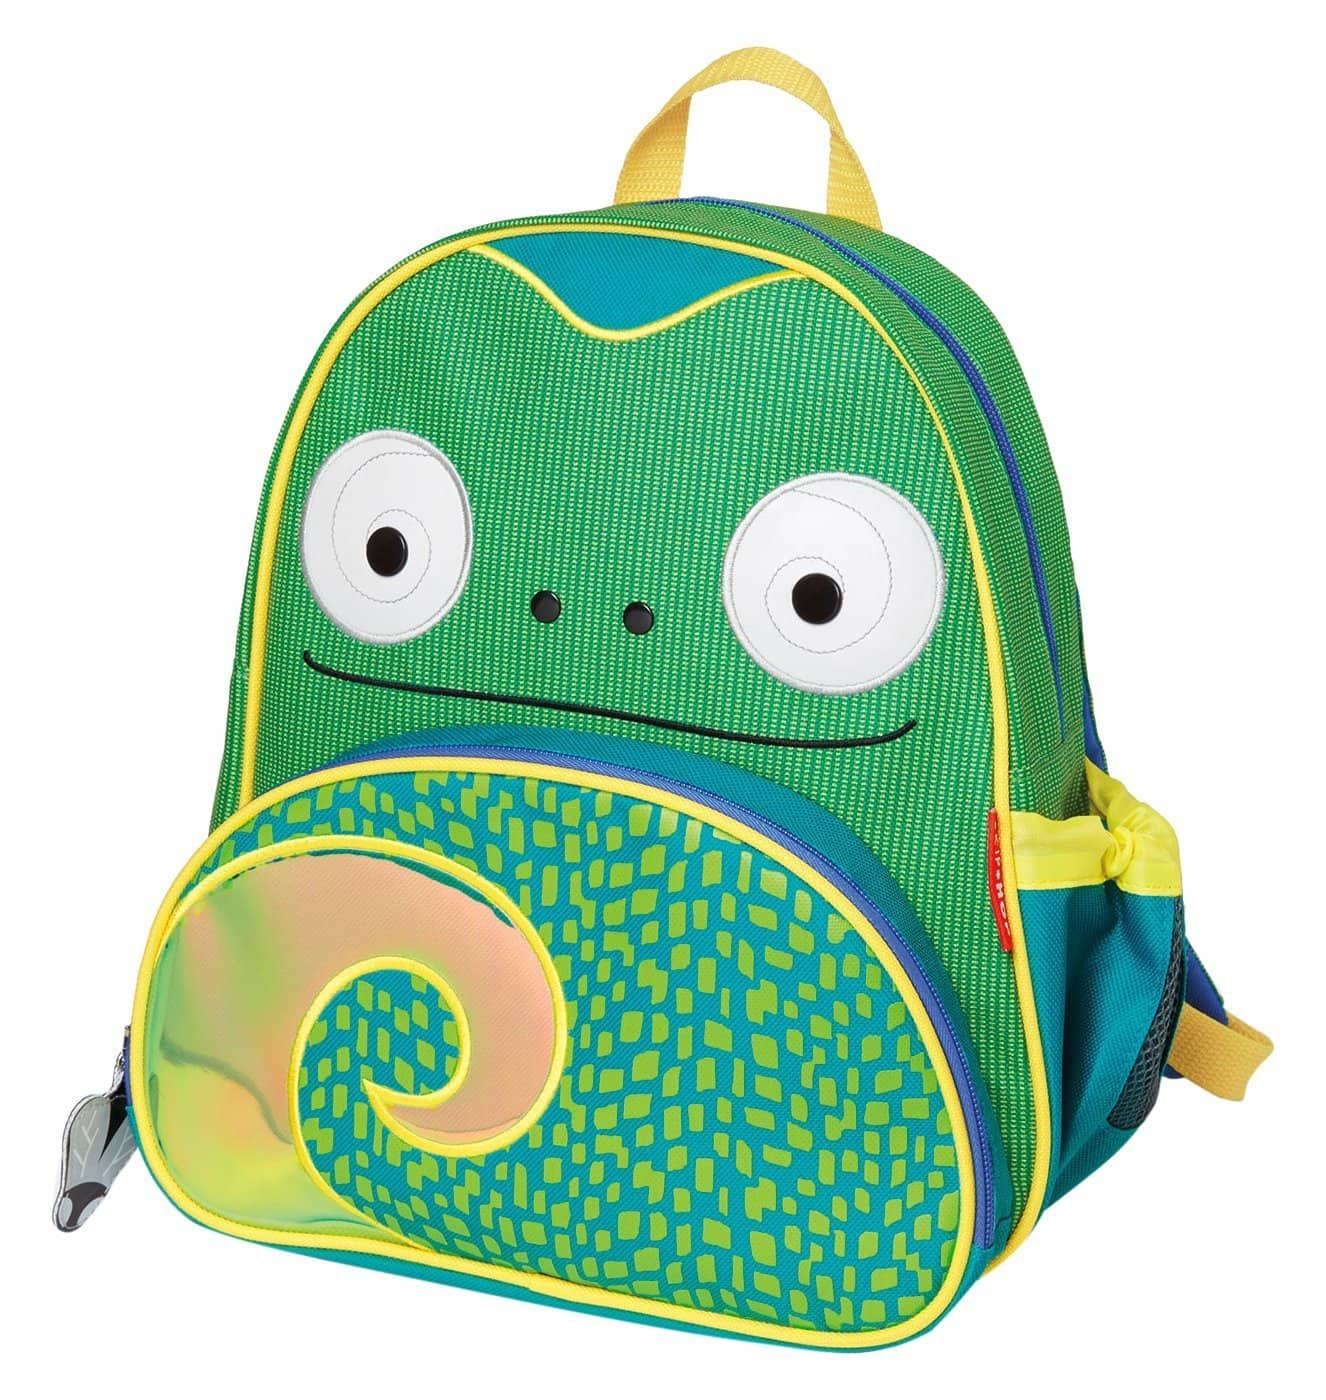 Skip Hop Zoo Toddler Kids Backpack (Unicorn) for $6.49 at Amazon.com